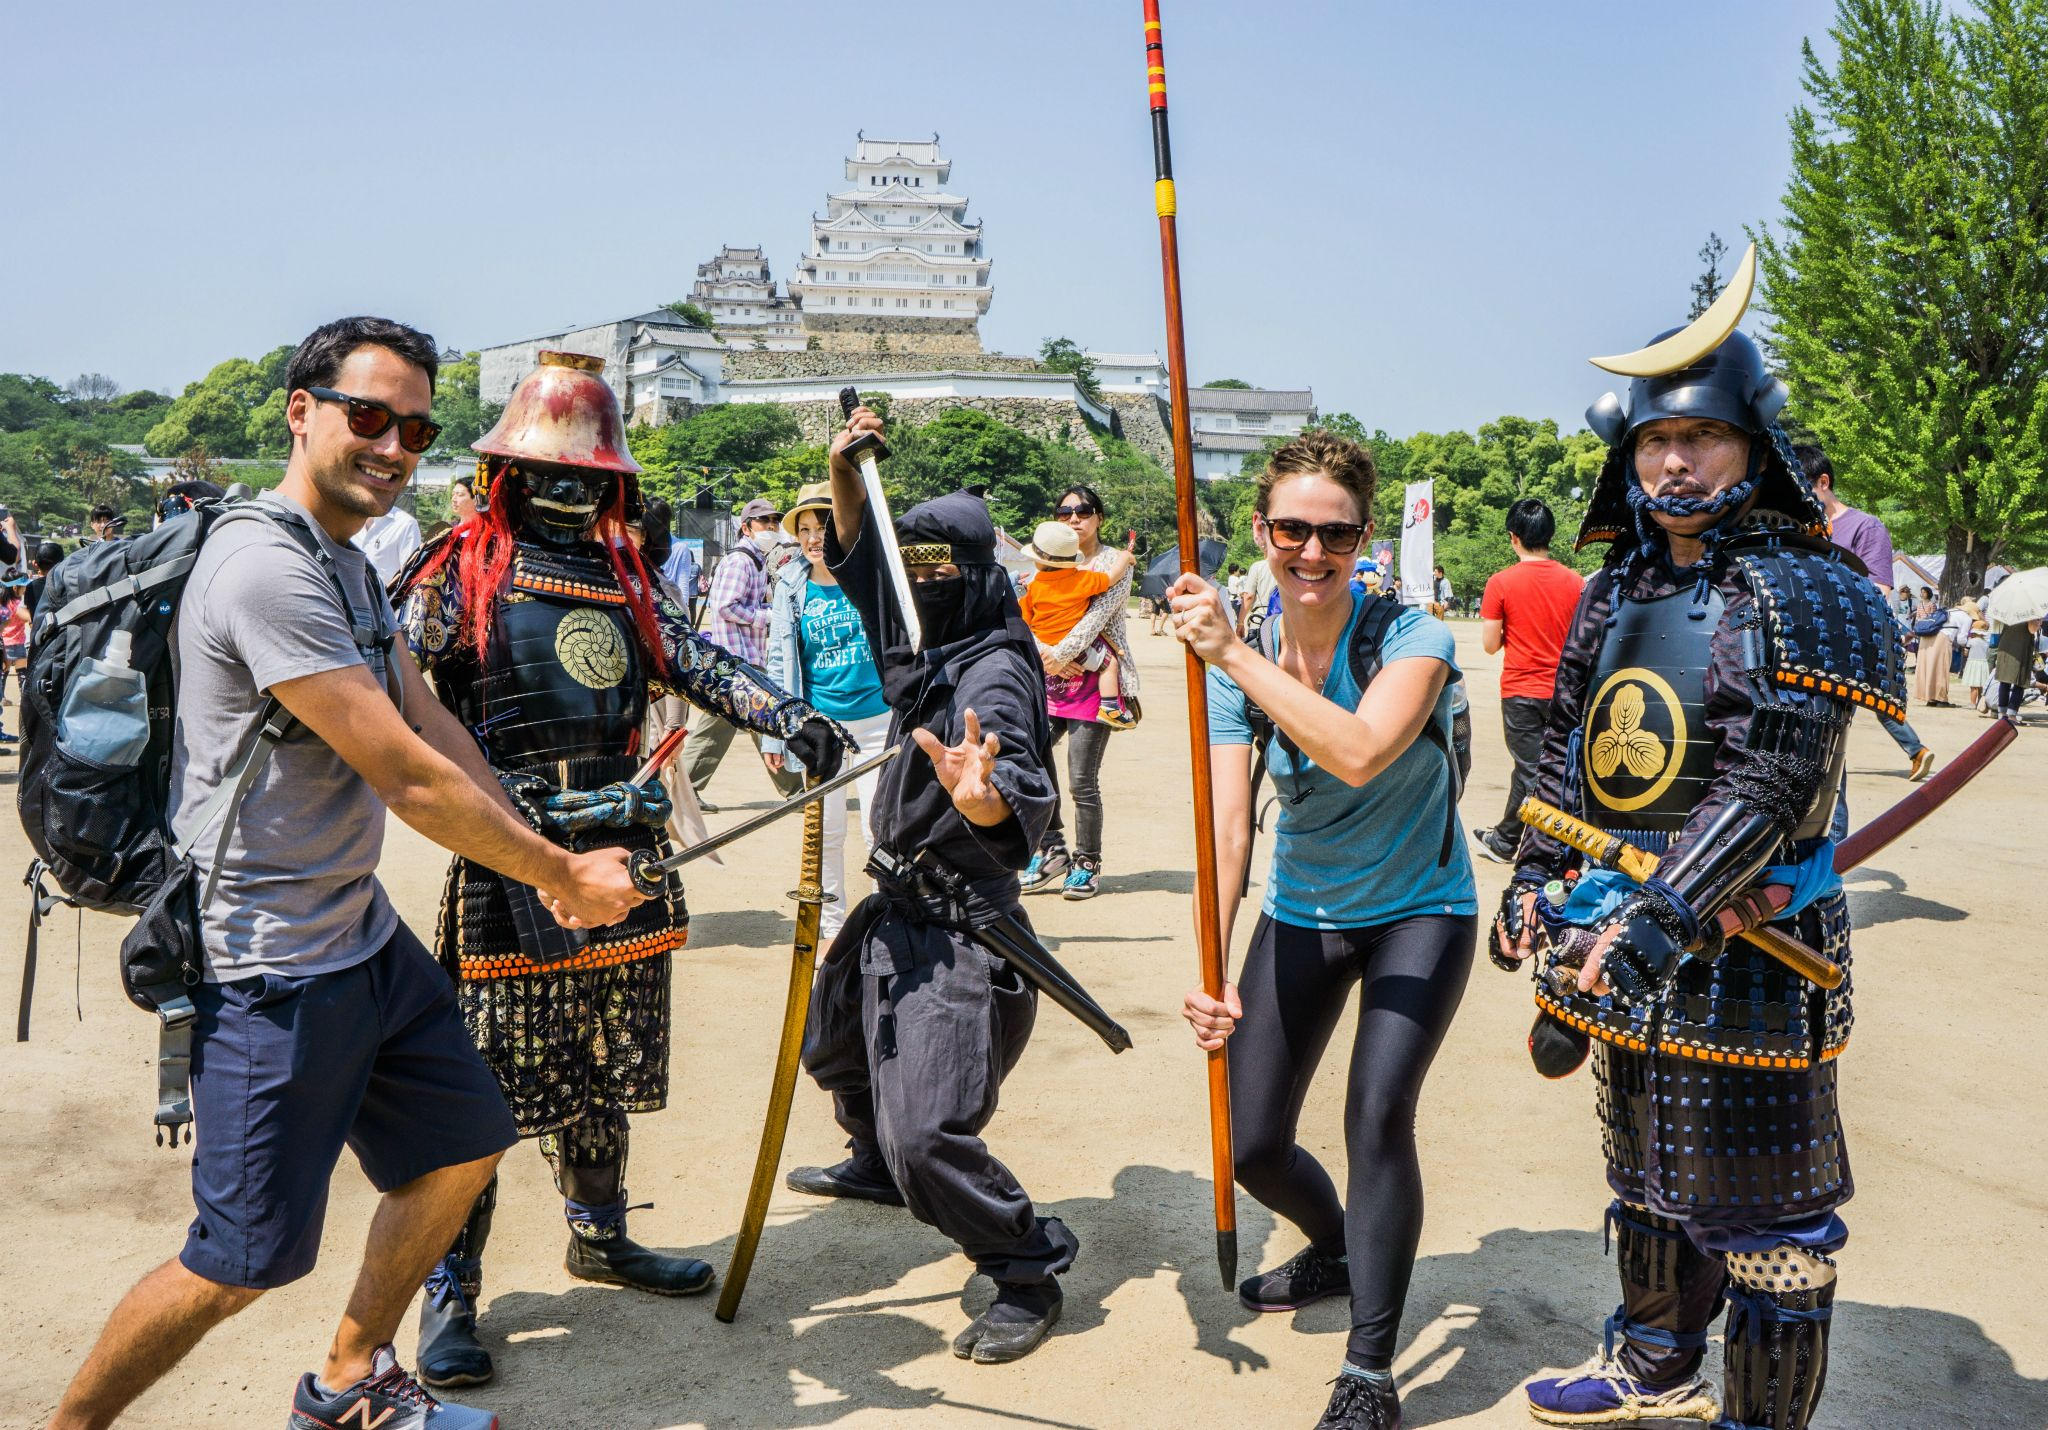 Having fun near Himeji Castle